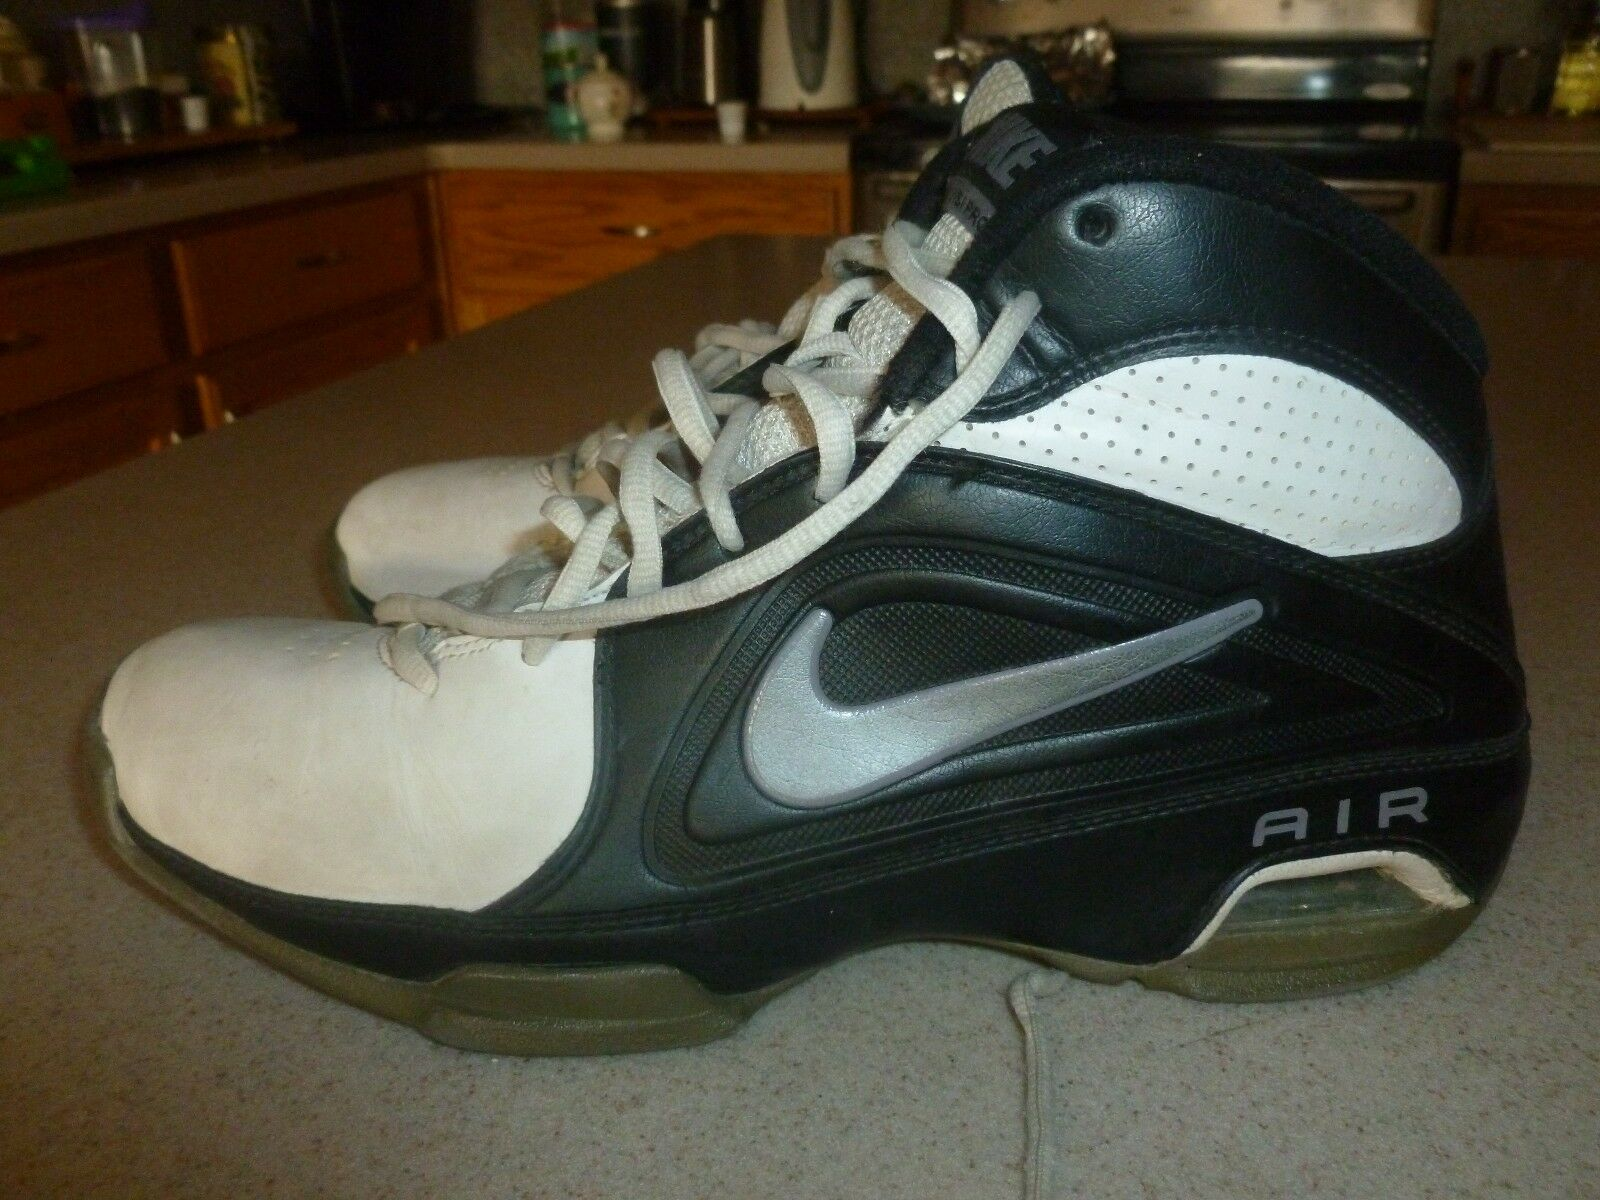 Nike Air Retro BLACK White Shoes Sneakers Price reduction